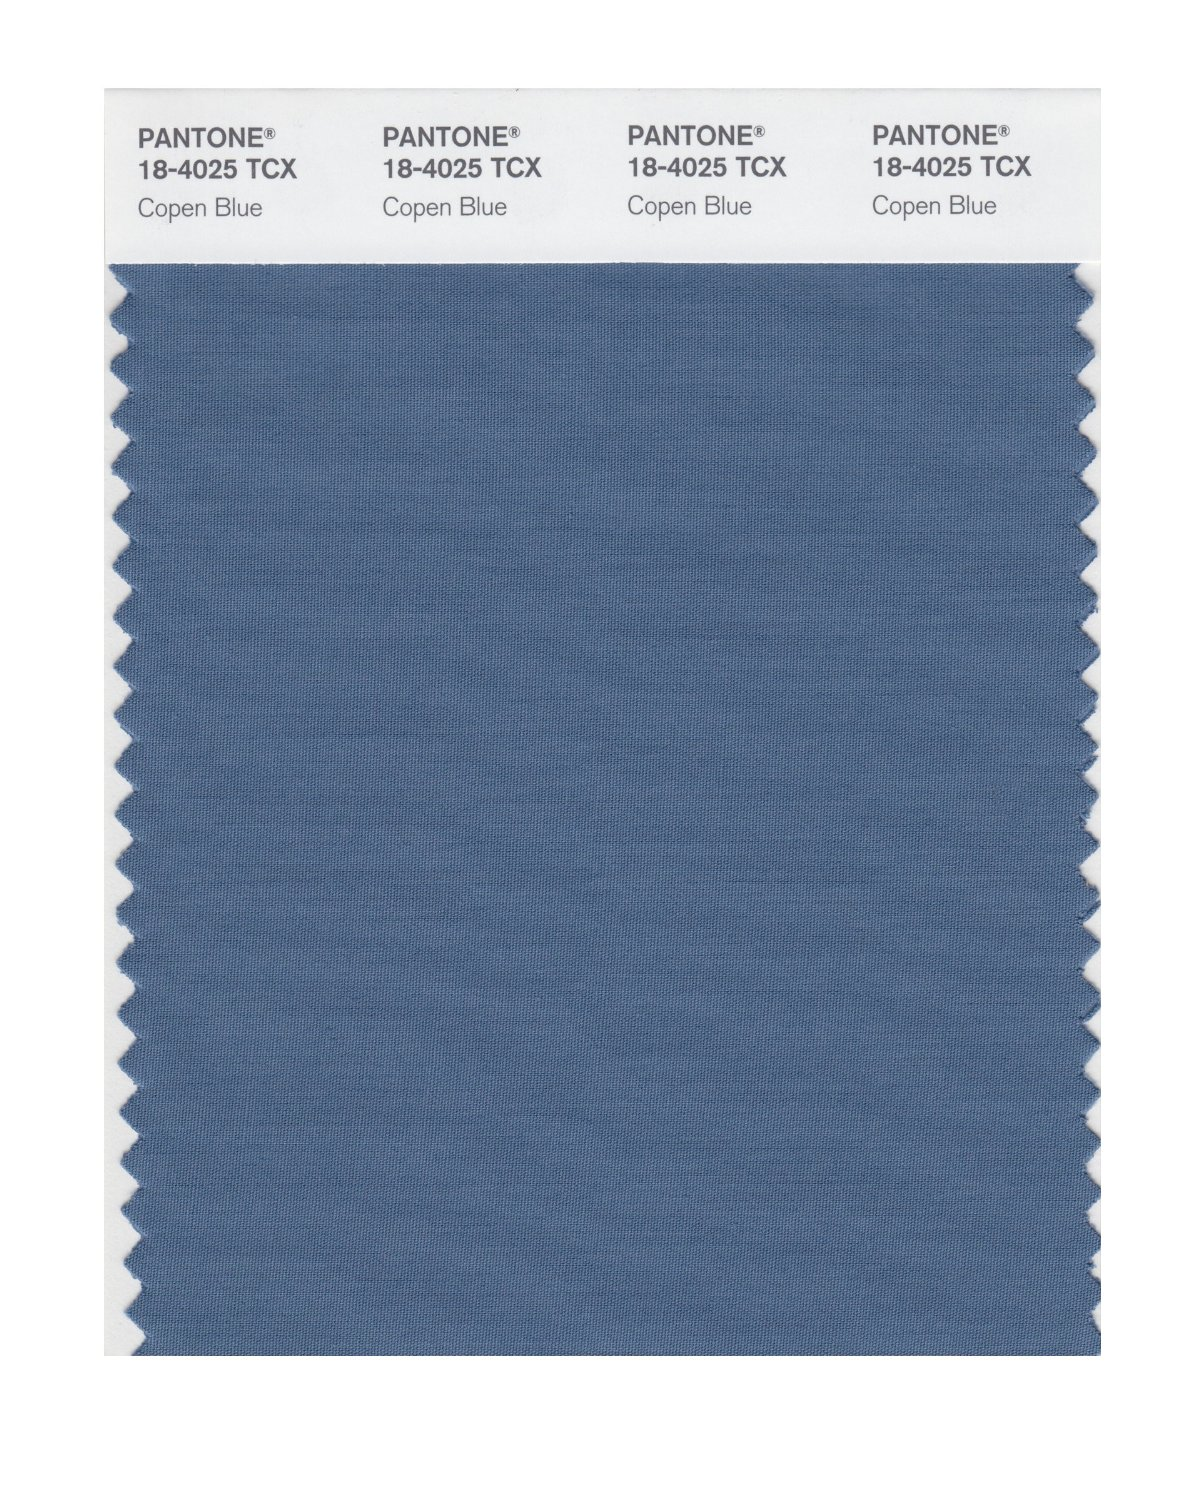 Pantone Smart Swatch 18-4025 Copen Blue